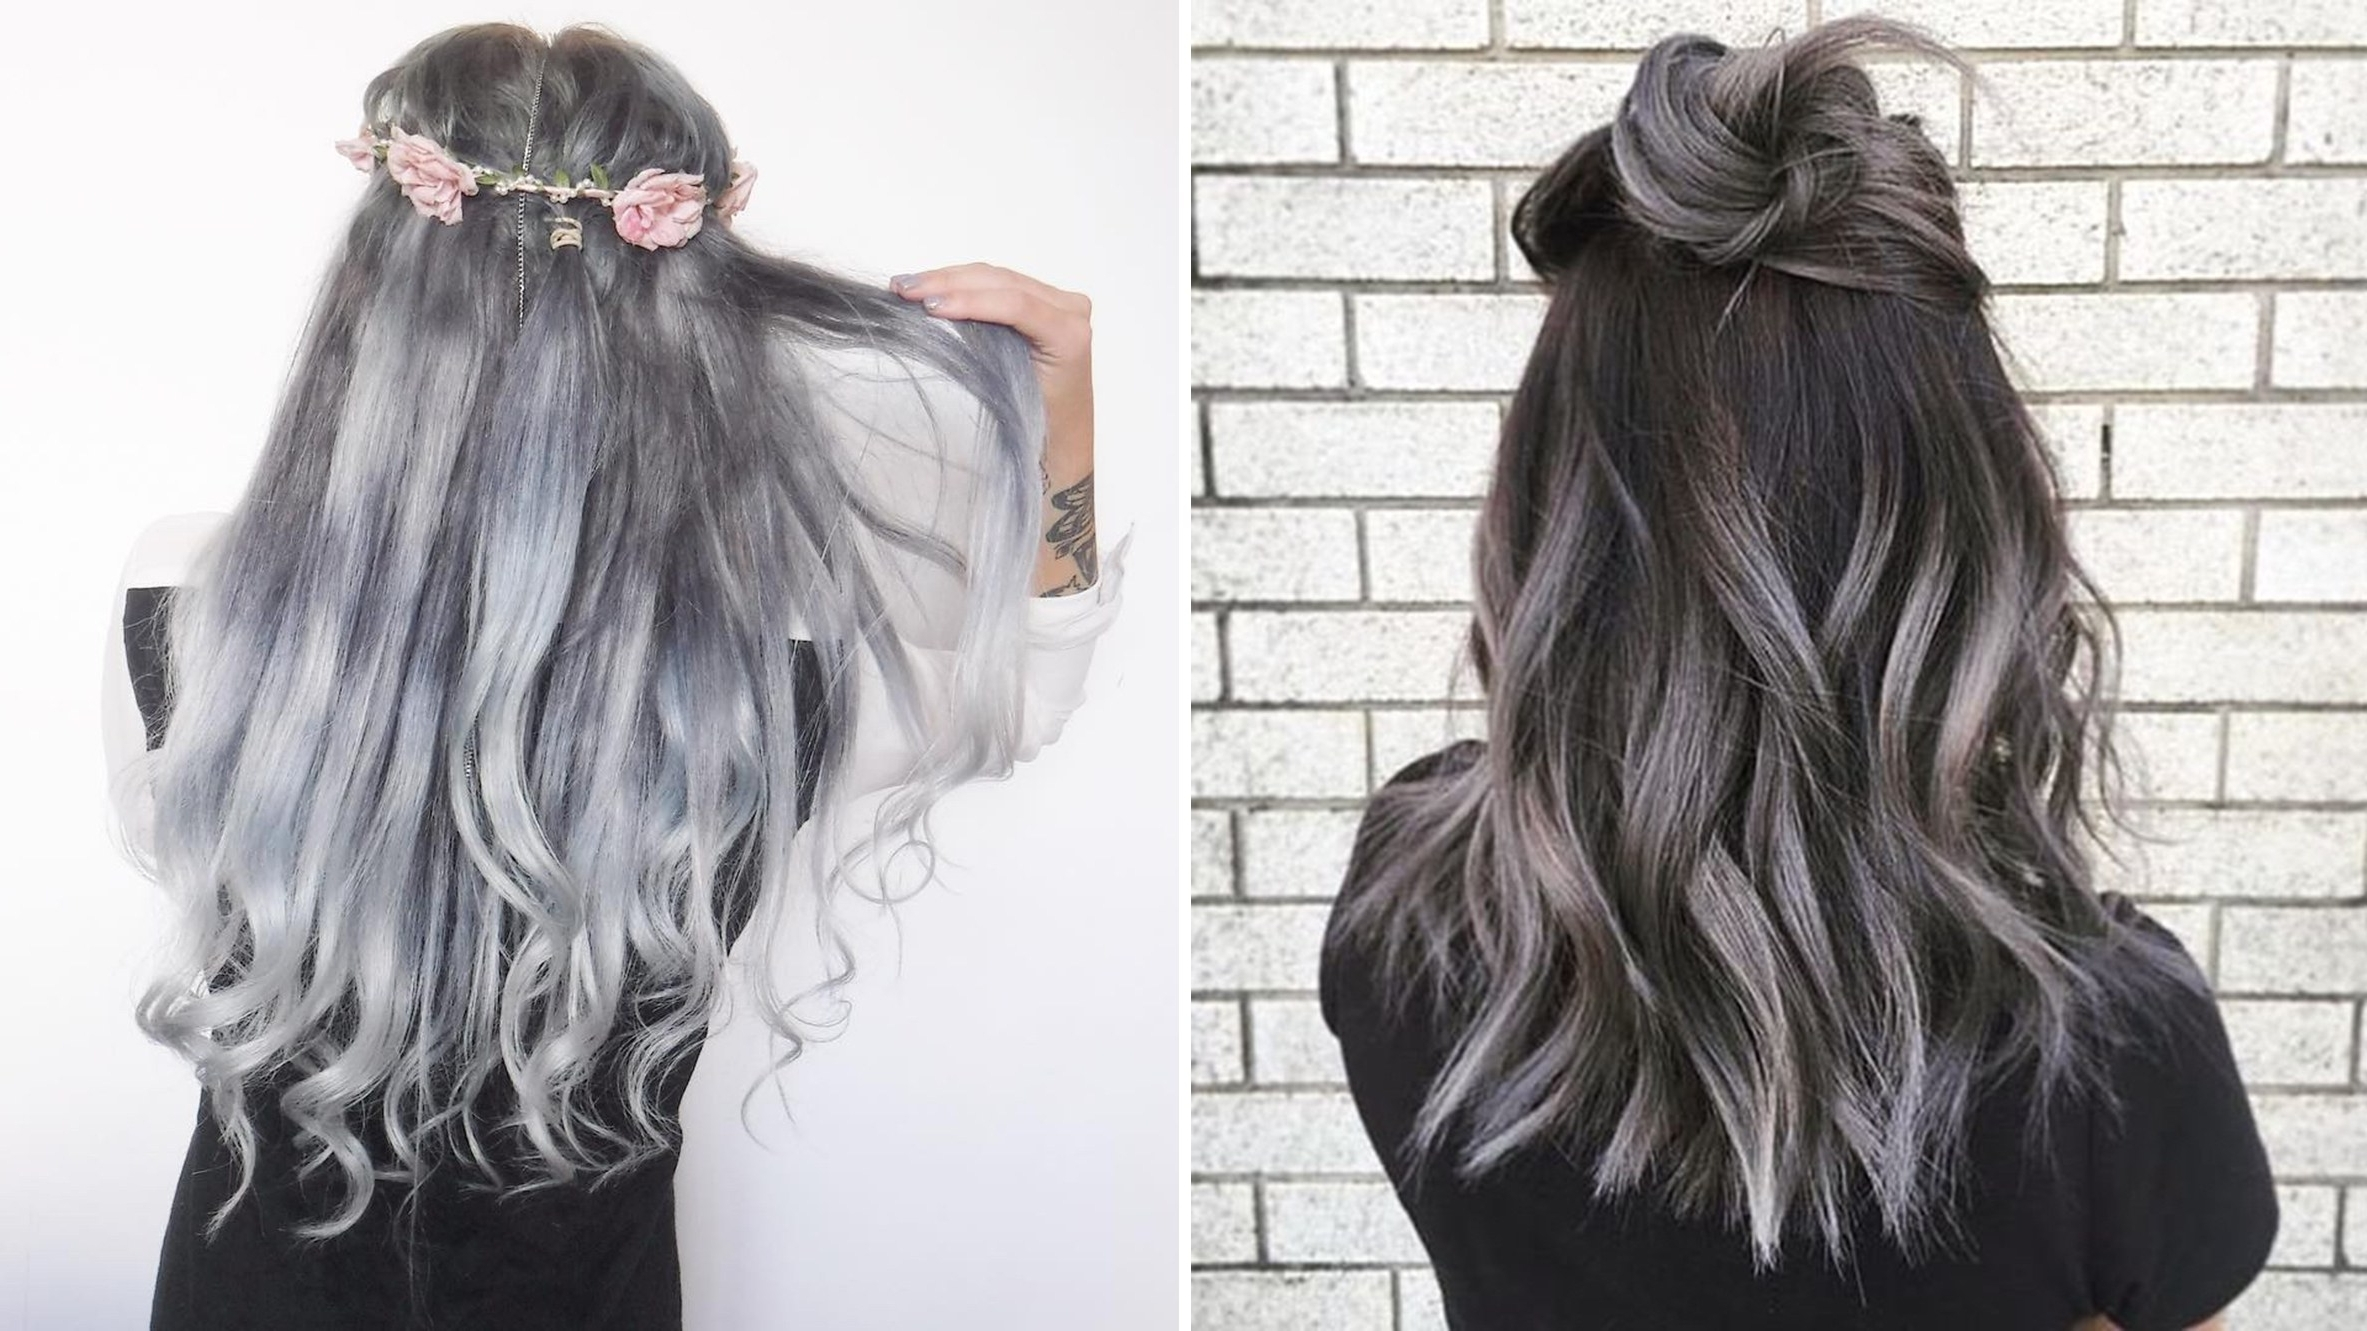 Fashionable Grayscale Ombre Blonde Hairstyles Within The Gray Hair Trend: 32 Instagram Worthy Gray Ombré Hairstyles (View 7 of 20)